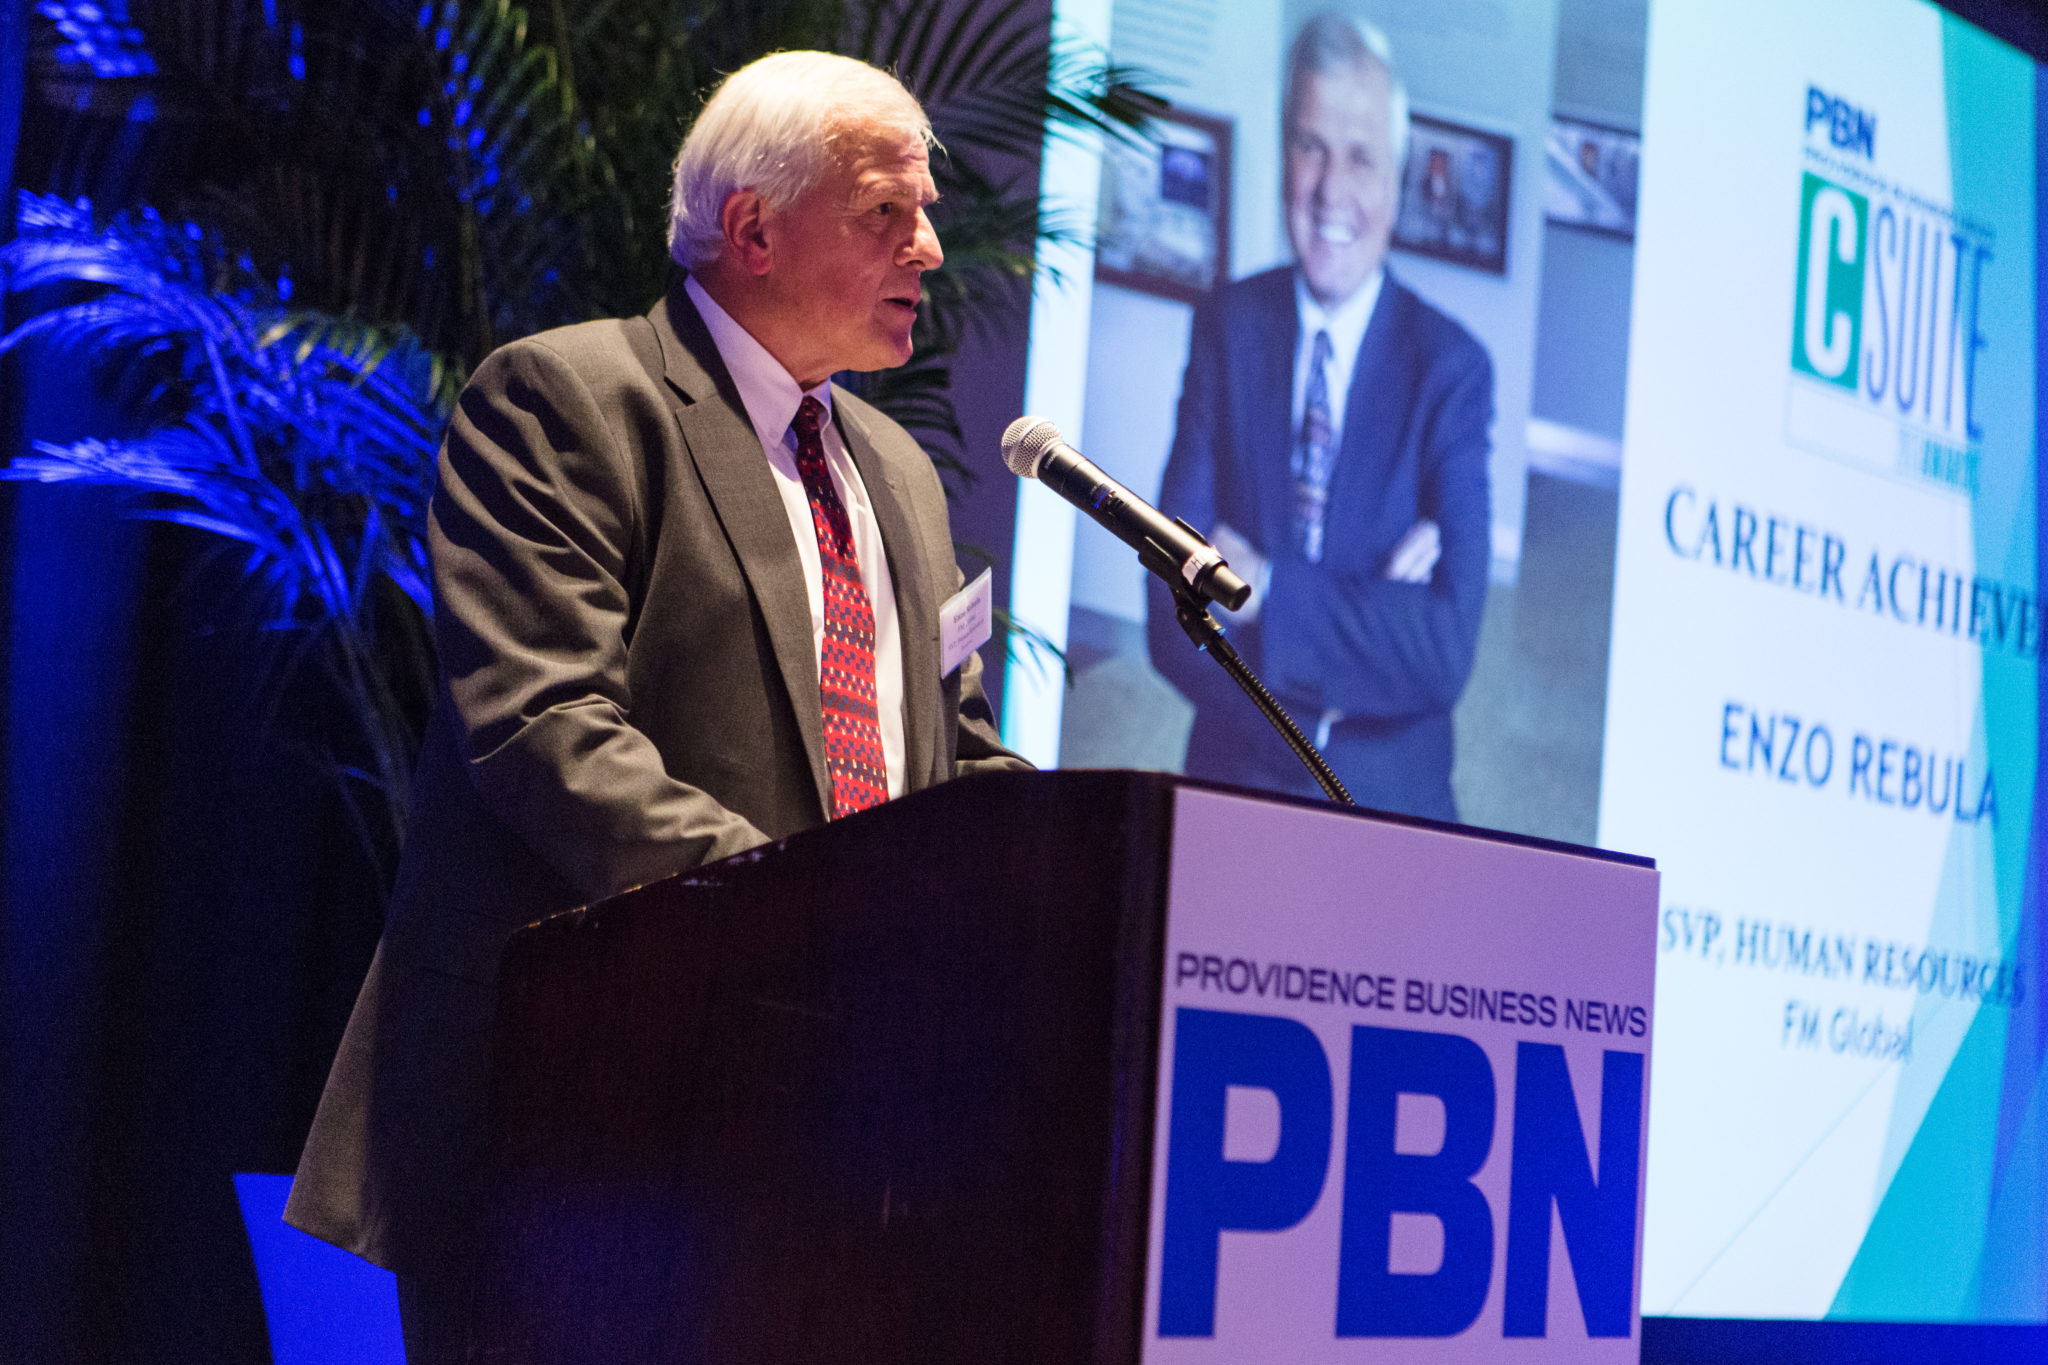 THE CAREER ACHIEVER honoree for the 2017 C-Suite Awards program, Enzo Rebula, addresses the crowd at the Omni Providence Hotel Thursday.